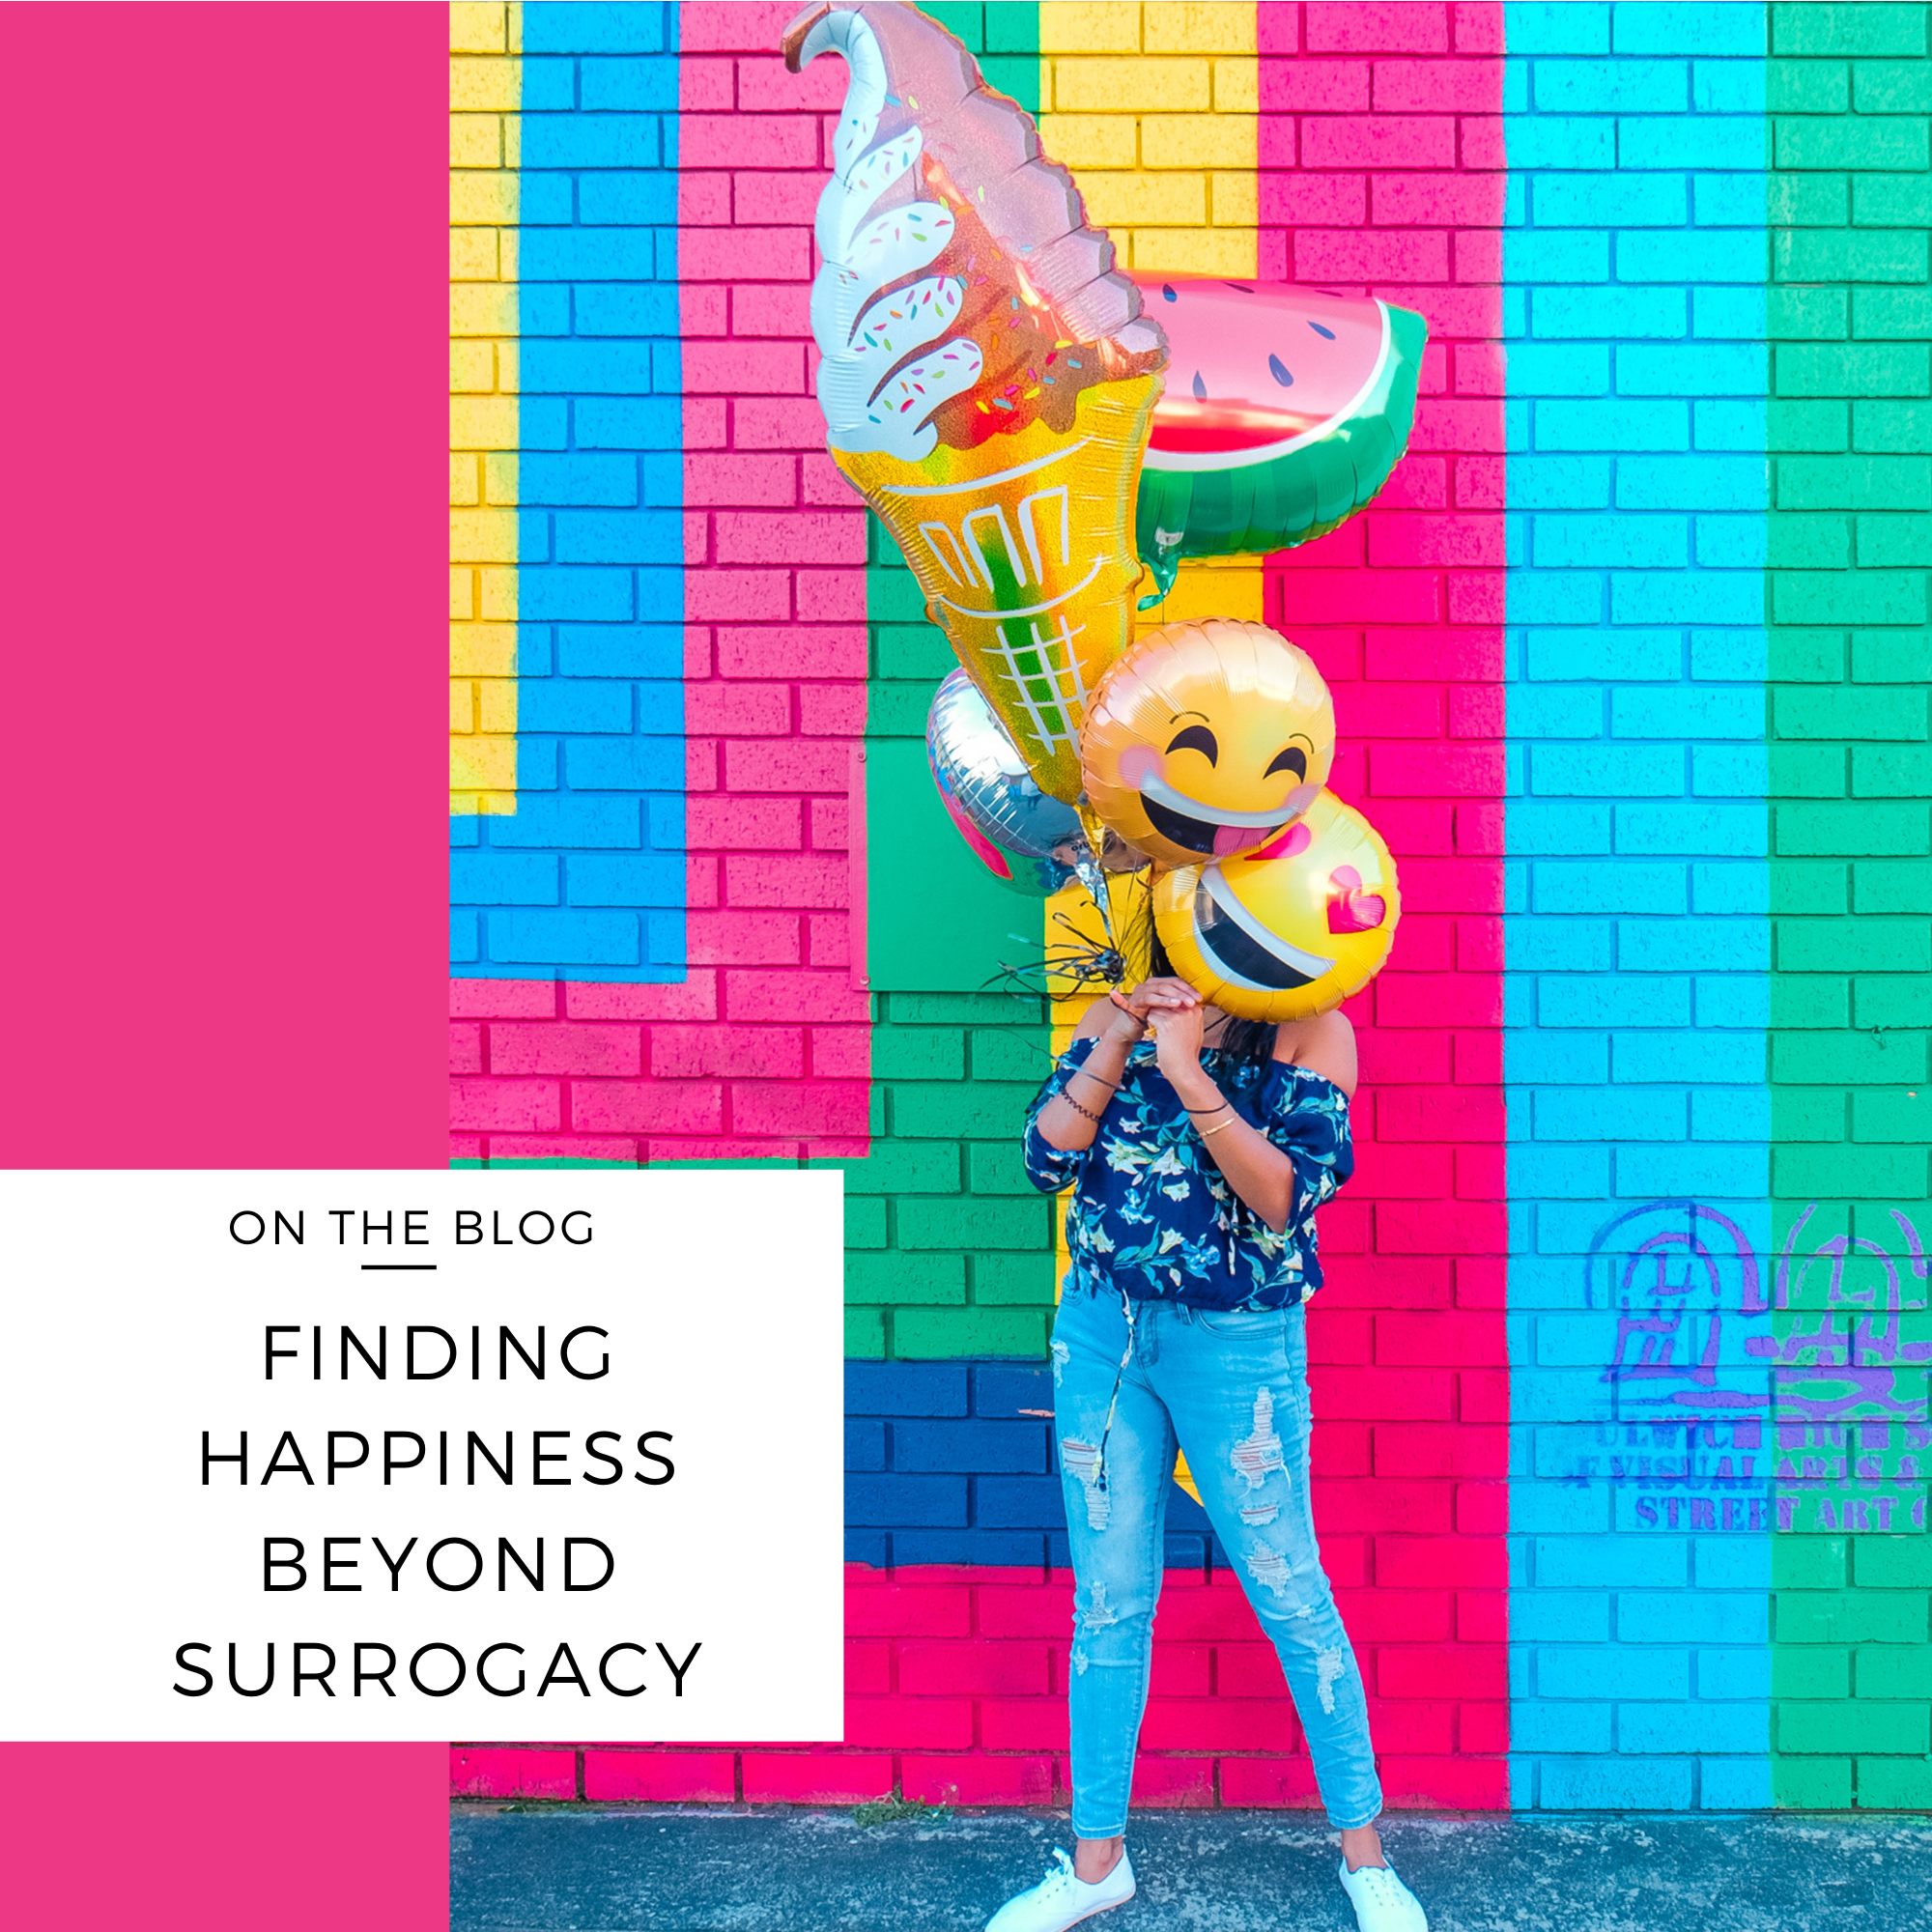 finding happiness beyond surrogacy